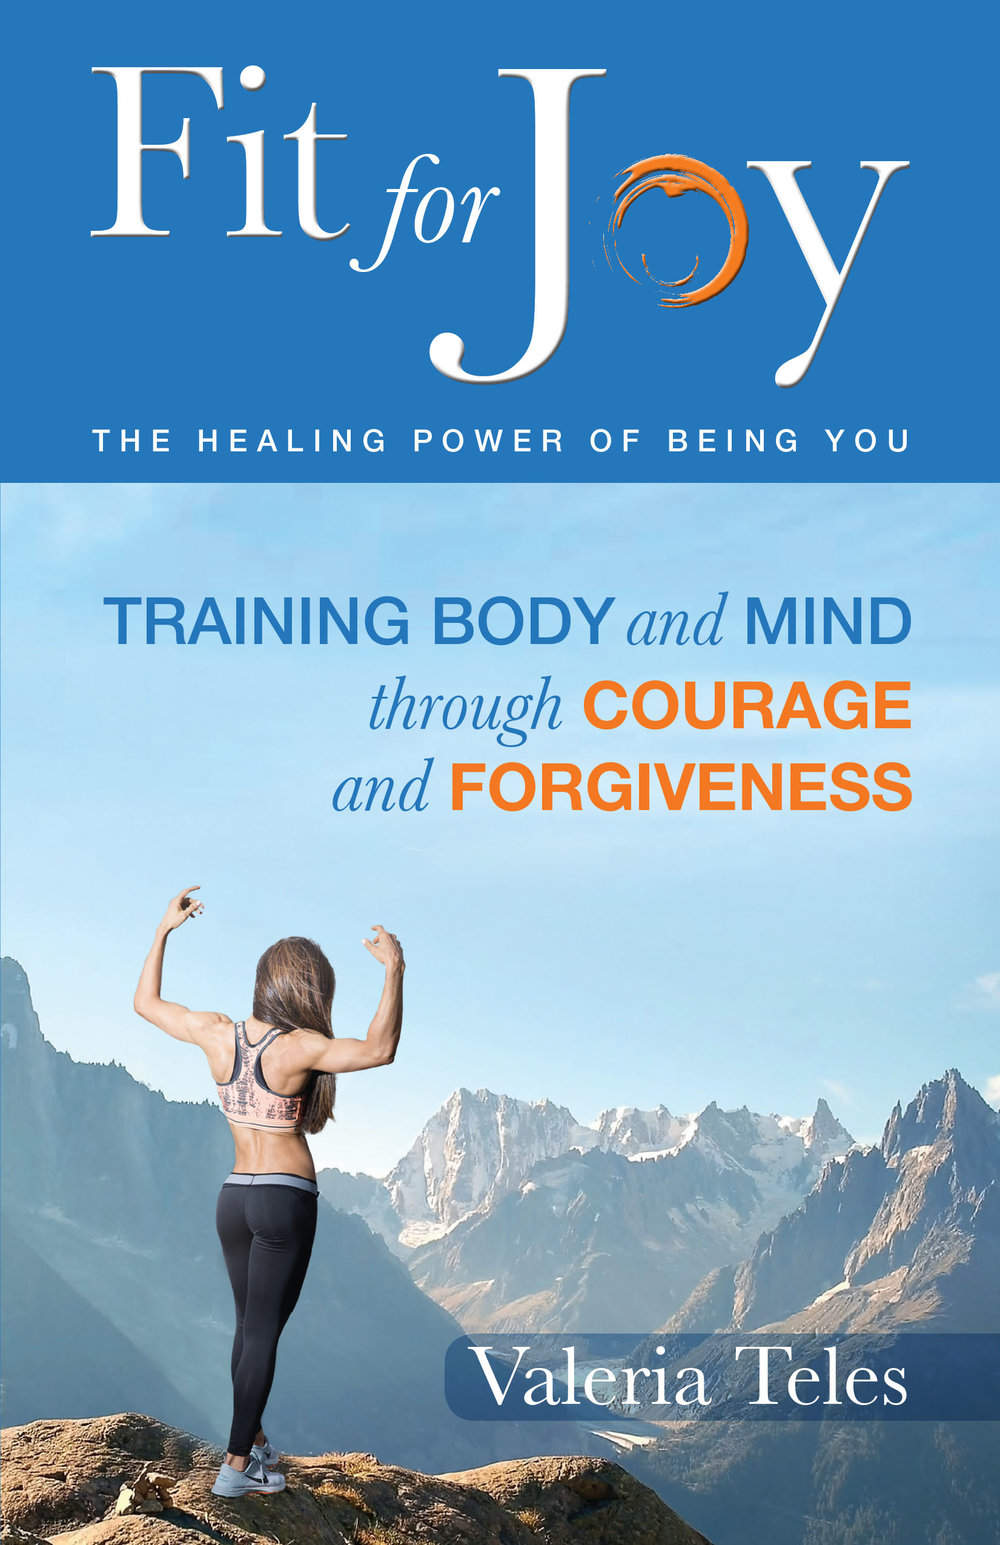 """More Joy —— Less Anxiety - YOU ARE NATURE IN ITS ULTIMATE CREATIVE PERFECTION.The Fit for Joy book will inspire you and someone you love to listen to the heart.""""This book reminds us we are more than our bodies, we are souls having experiences in our body, in search of our true JOY"""". ~ Tamilee Webb - Author, Buns of Steel and Abs of Steel Instructor""""An acceptance of spiritual reflection is one prerequisite for appreciating this story's approach. Those who hold such openness will discover a treasure within."""" ~ Diane Donovan, MidWest Book Review""""An inspiring look that aims to set the foundations of healthy living through a mindset of healing the inner-world."""" ~ April Pfender - Author, Reiki Master practitioner and Spiritual Arts teacher""""When I finished reading the book, I felt a peace that I could control how I let things affect me."""" ~ Sally Shupe, Goodreads' Author and EditorCLICK HERE for Audiobook Sample"""